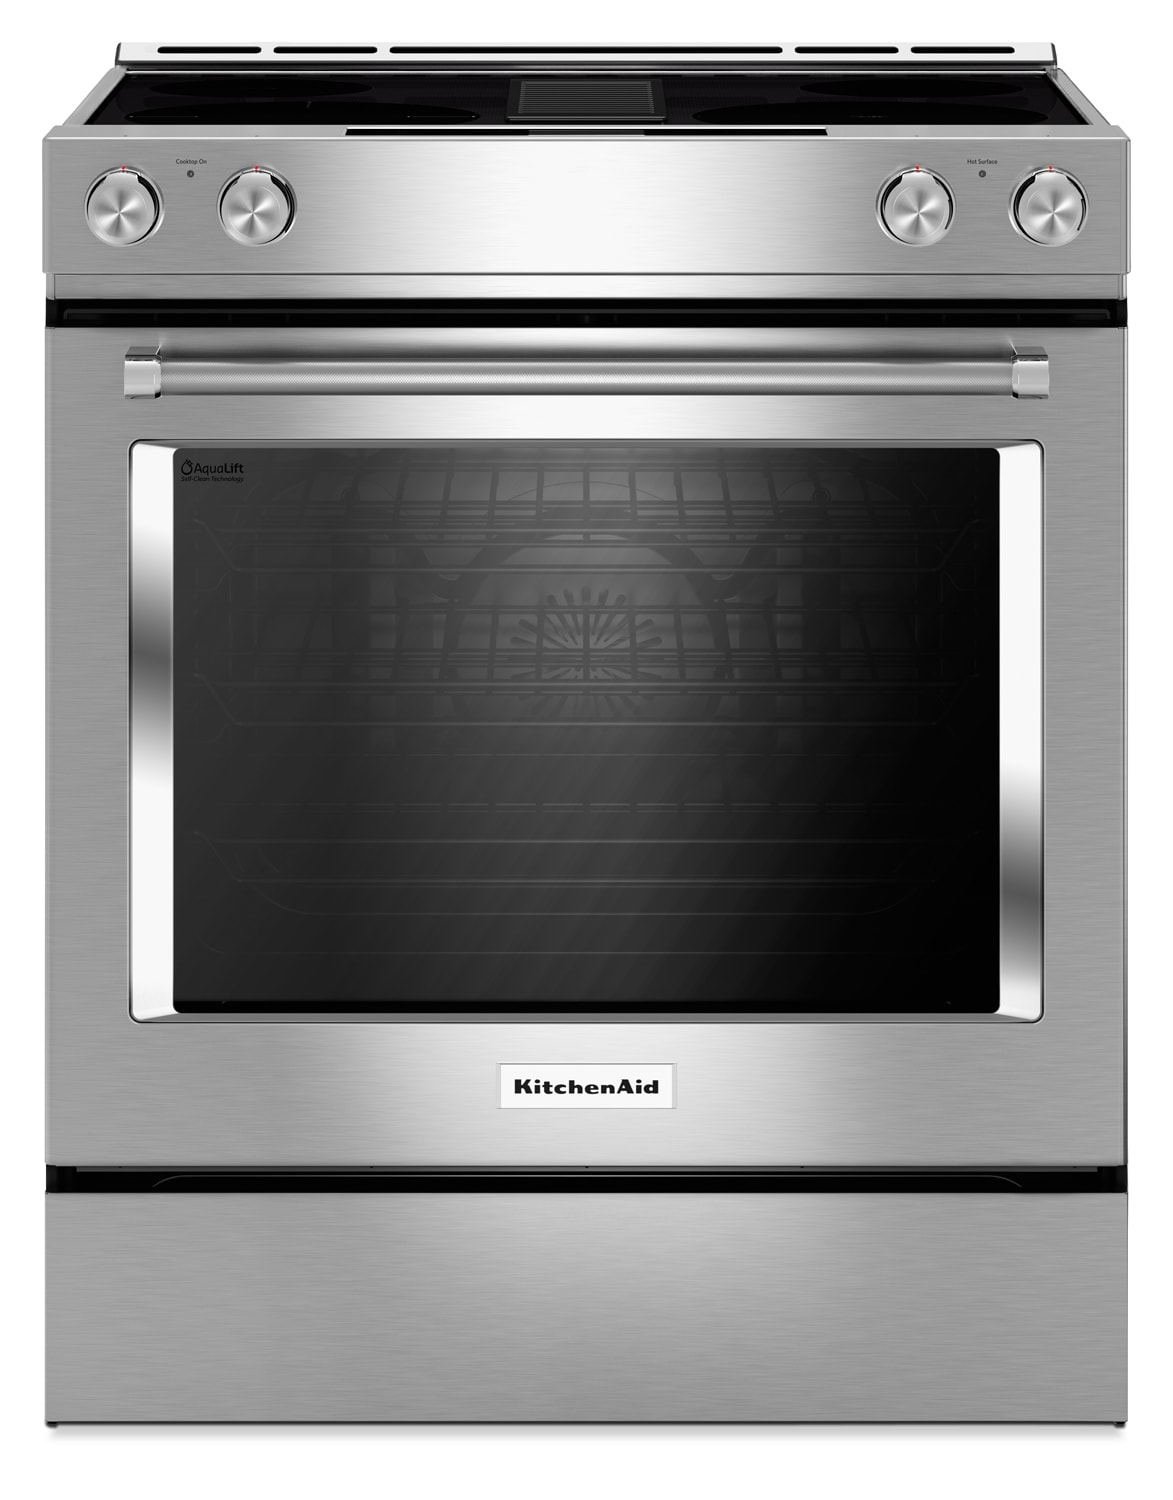 KitchenAid 6.4 Cu. Ft. 4-Burner Dual Fuel Downdraft Front Control Range - Stainless Steel